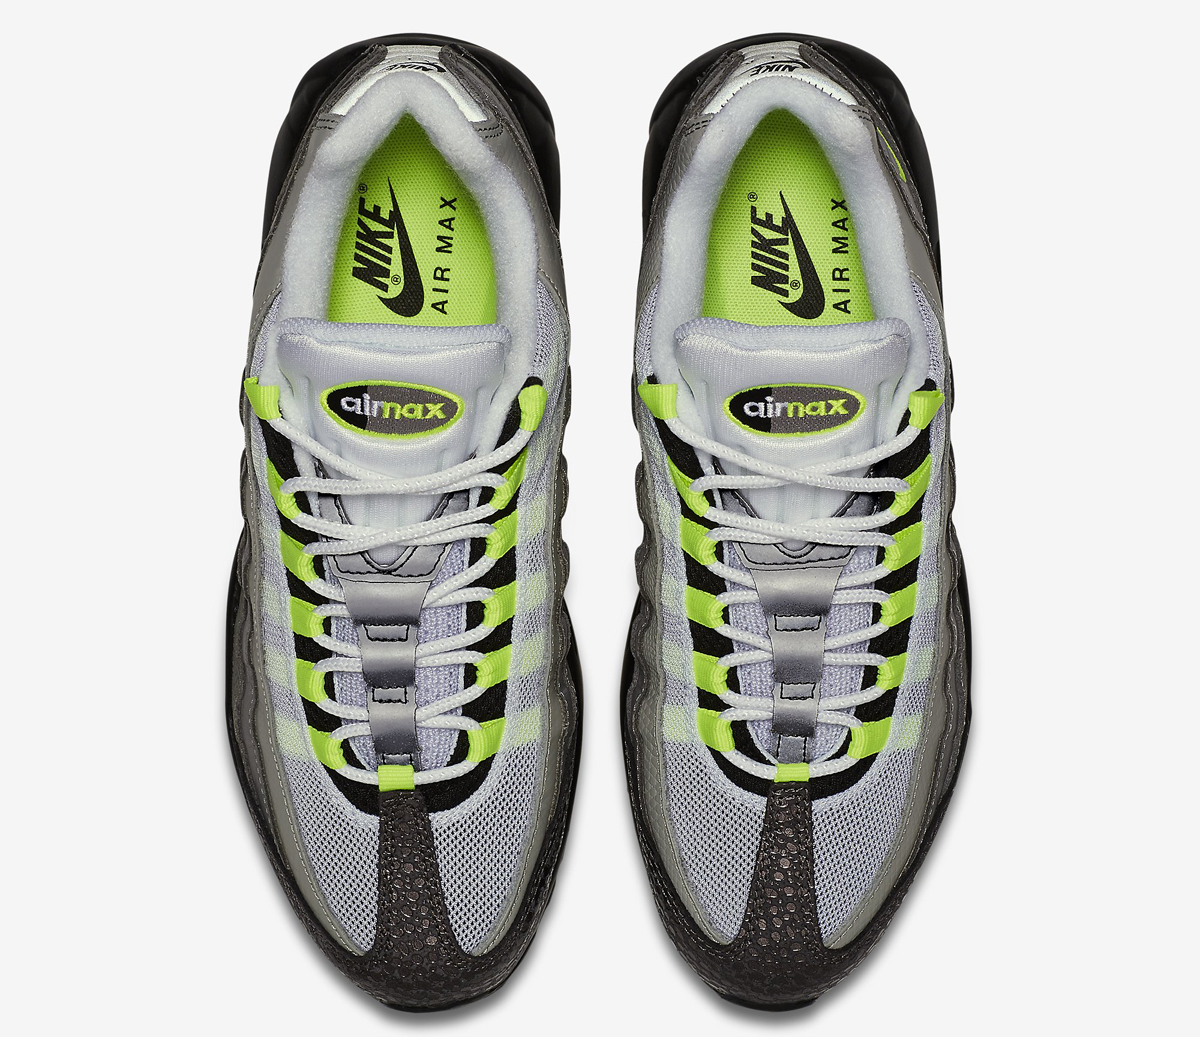 best authentic e8293 437c2 Neon Nike Air Max 95s Like Youve Never Seen Them Before